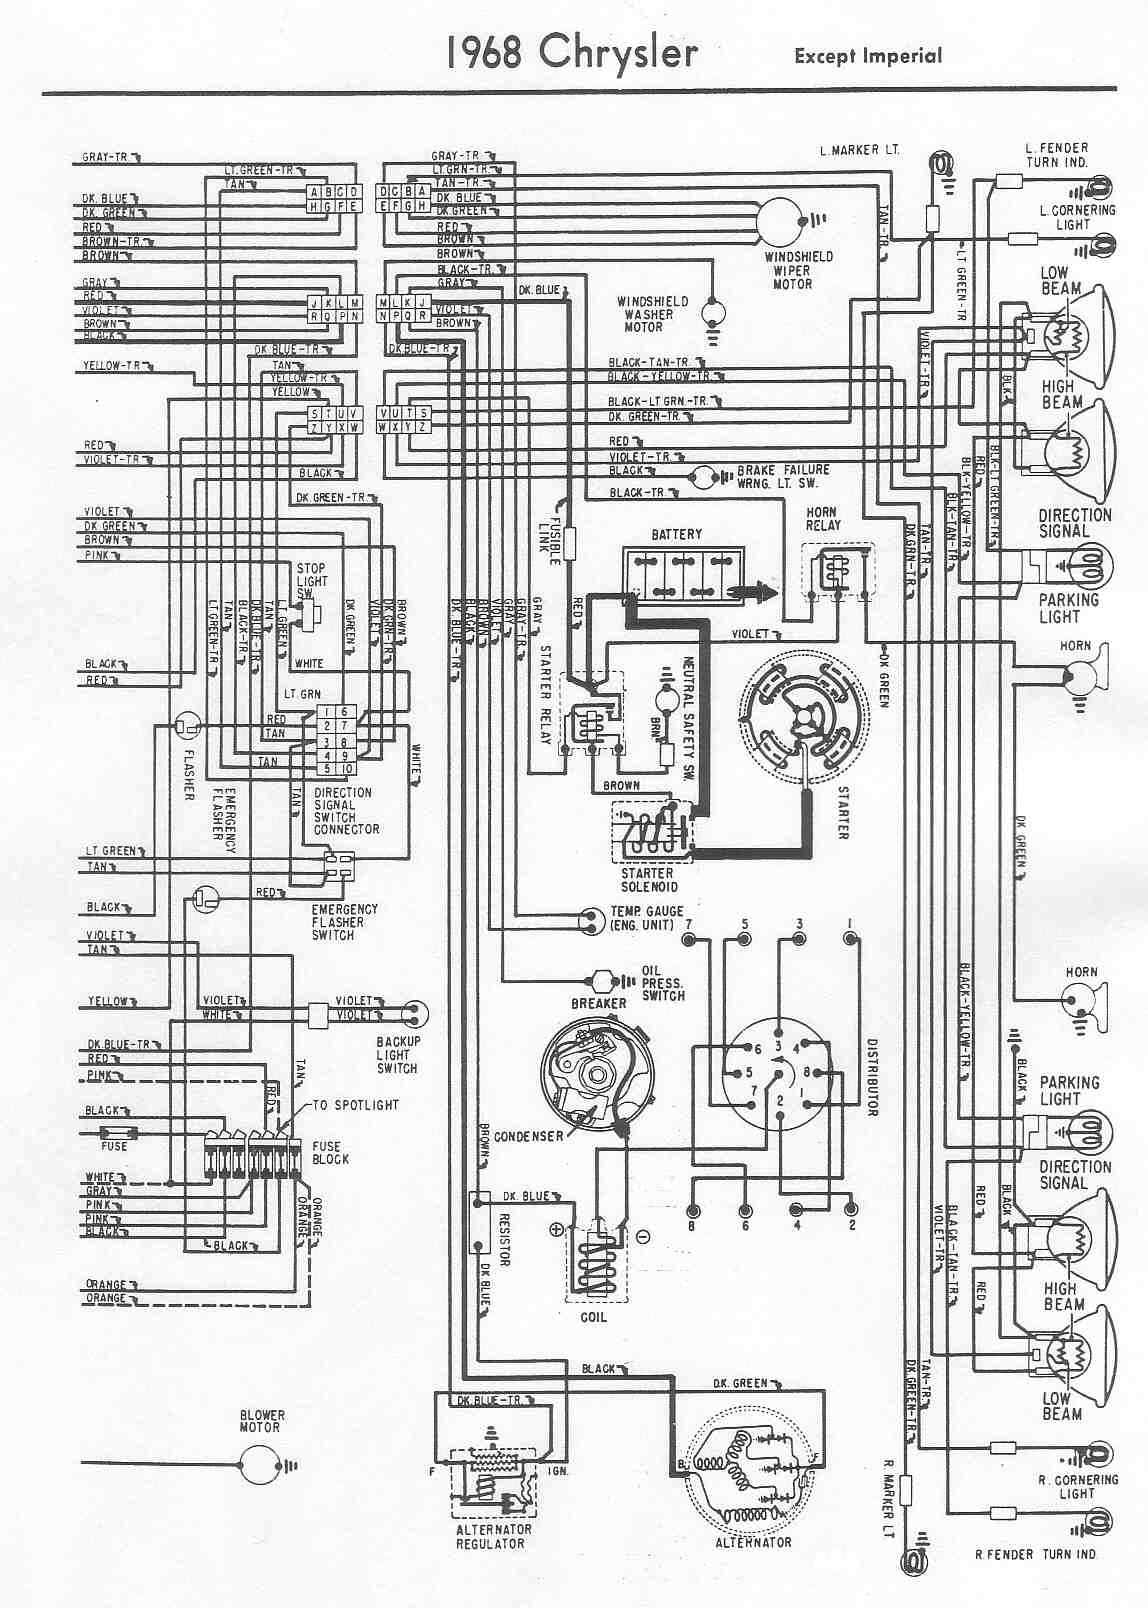 medium resolution of 68 dodge coronet wiring diagram simple wiring schema 1962 corvair wiring diagram 1965 dodge coronet